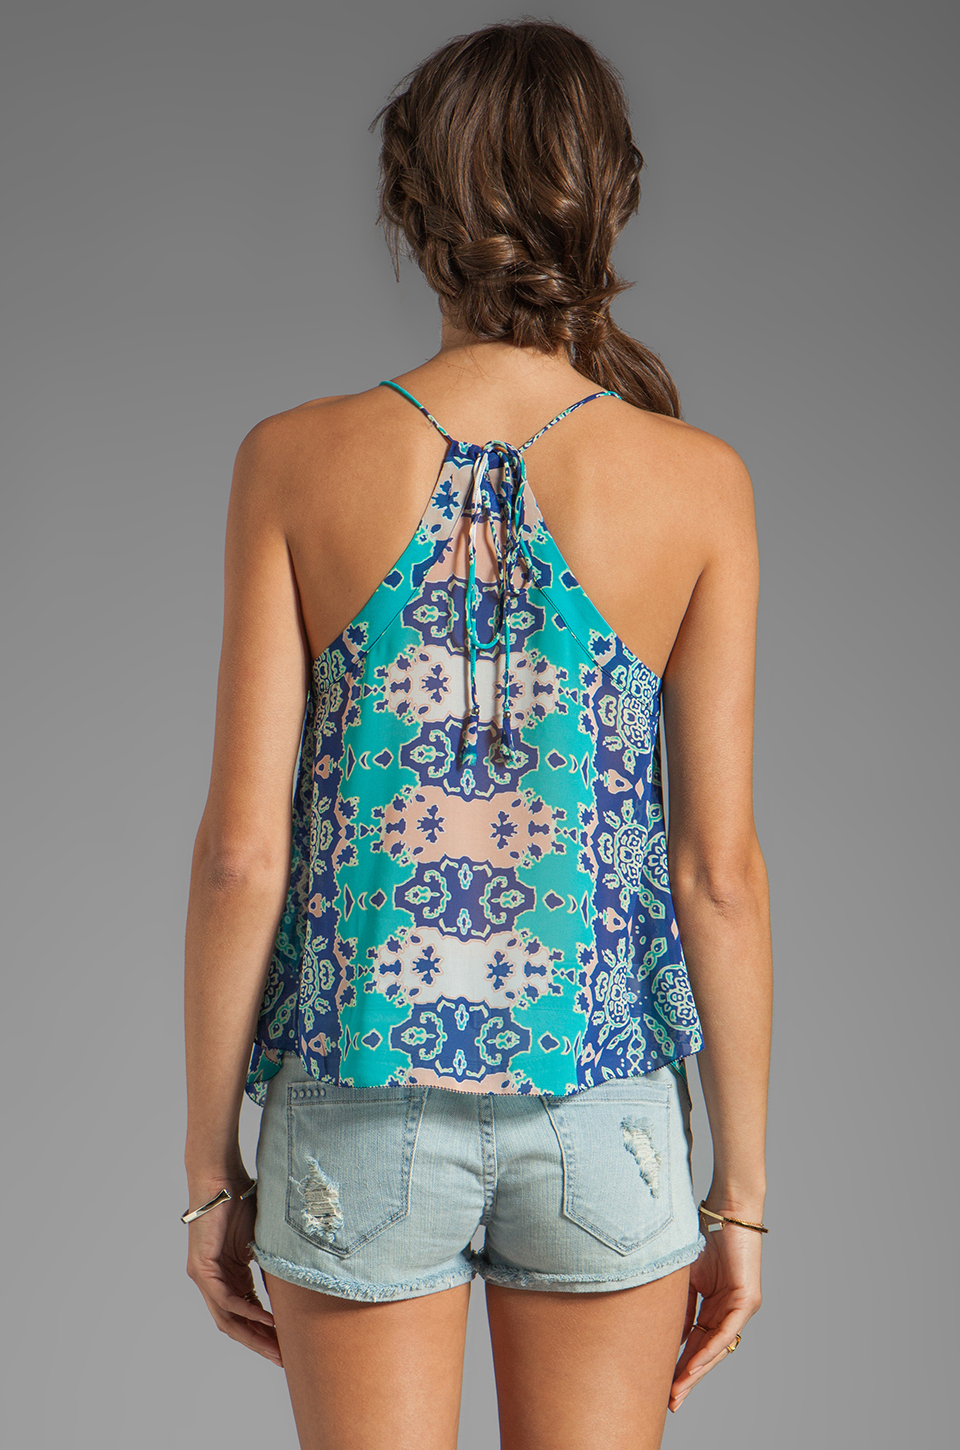 Dolce Vita Juna Beach Bali Tank in Blue Multi